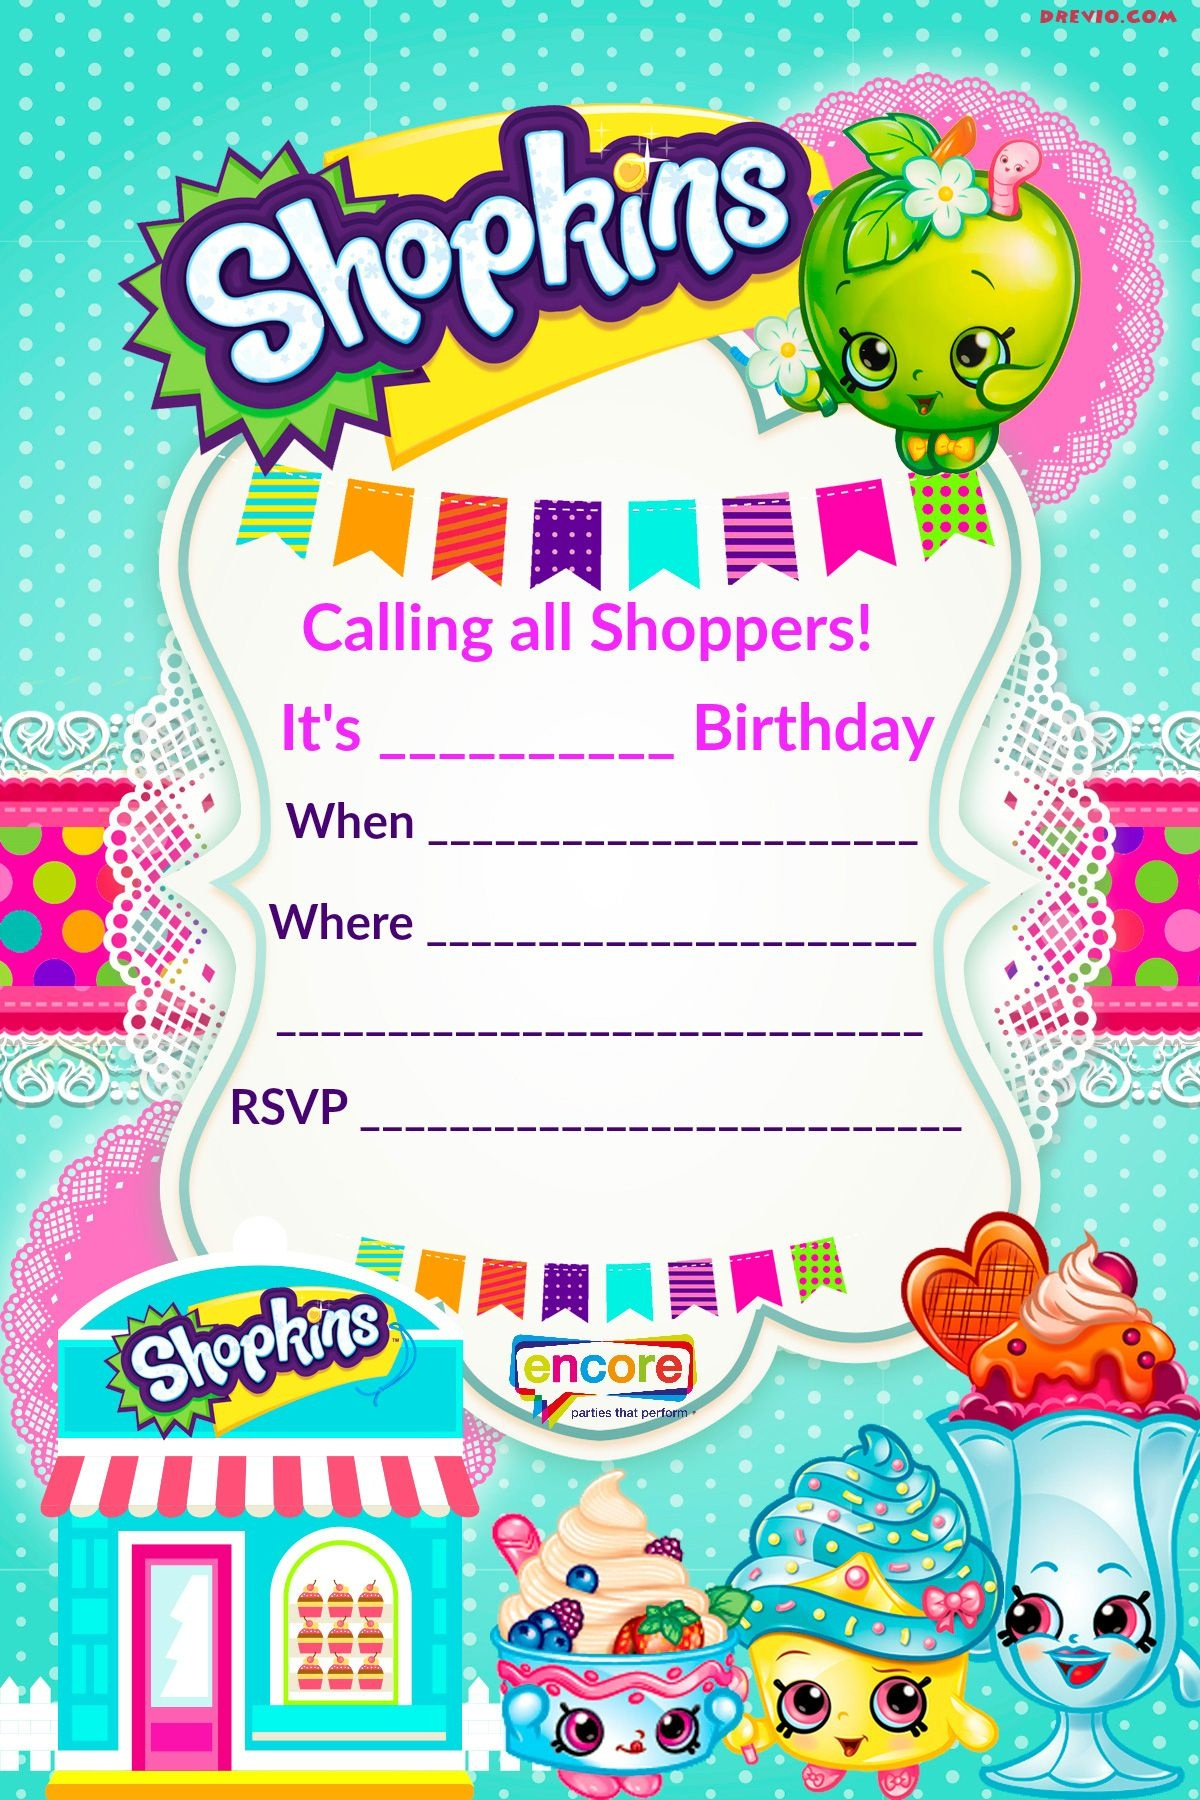 Updated - Free Printable Shopkins Birthday Invitation | Event - Shopkins Banner Printable Free